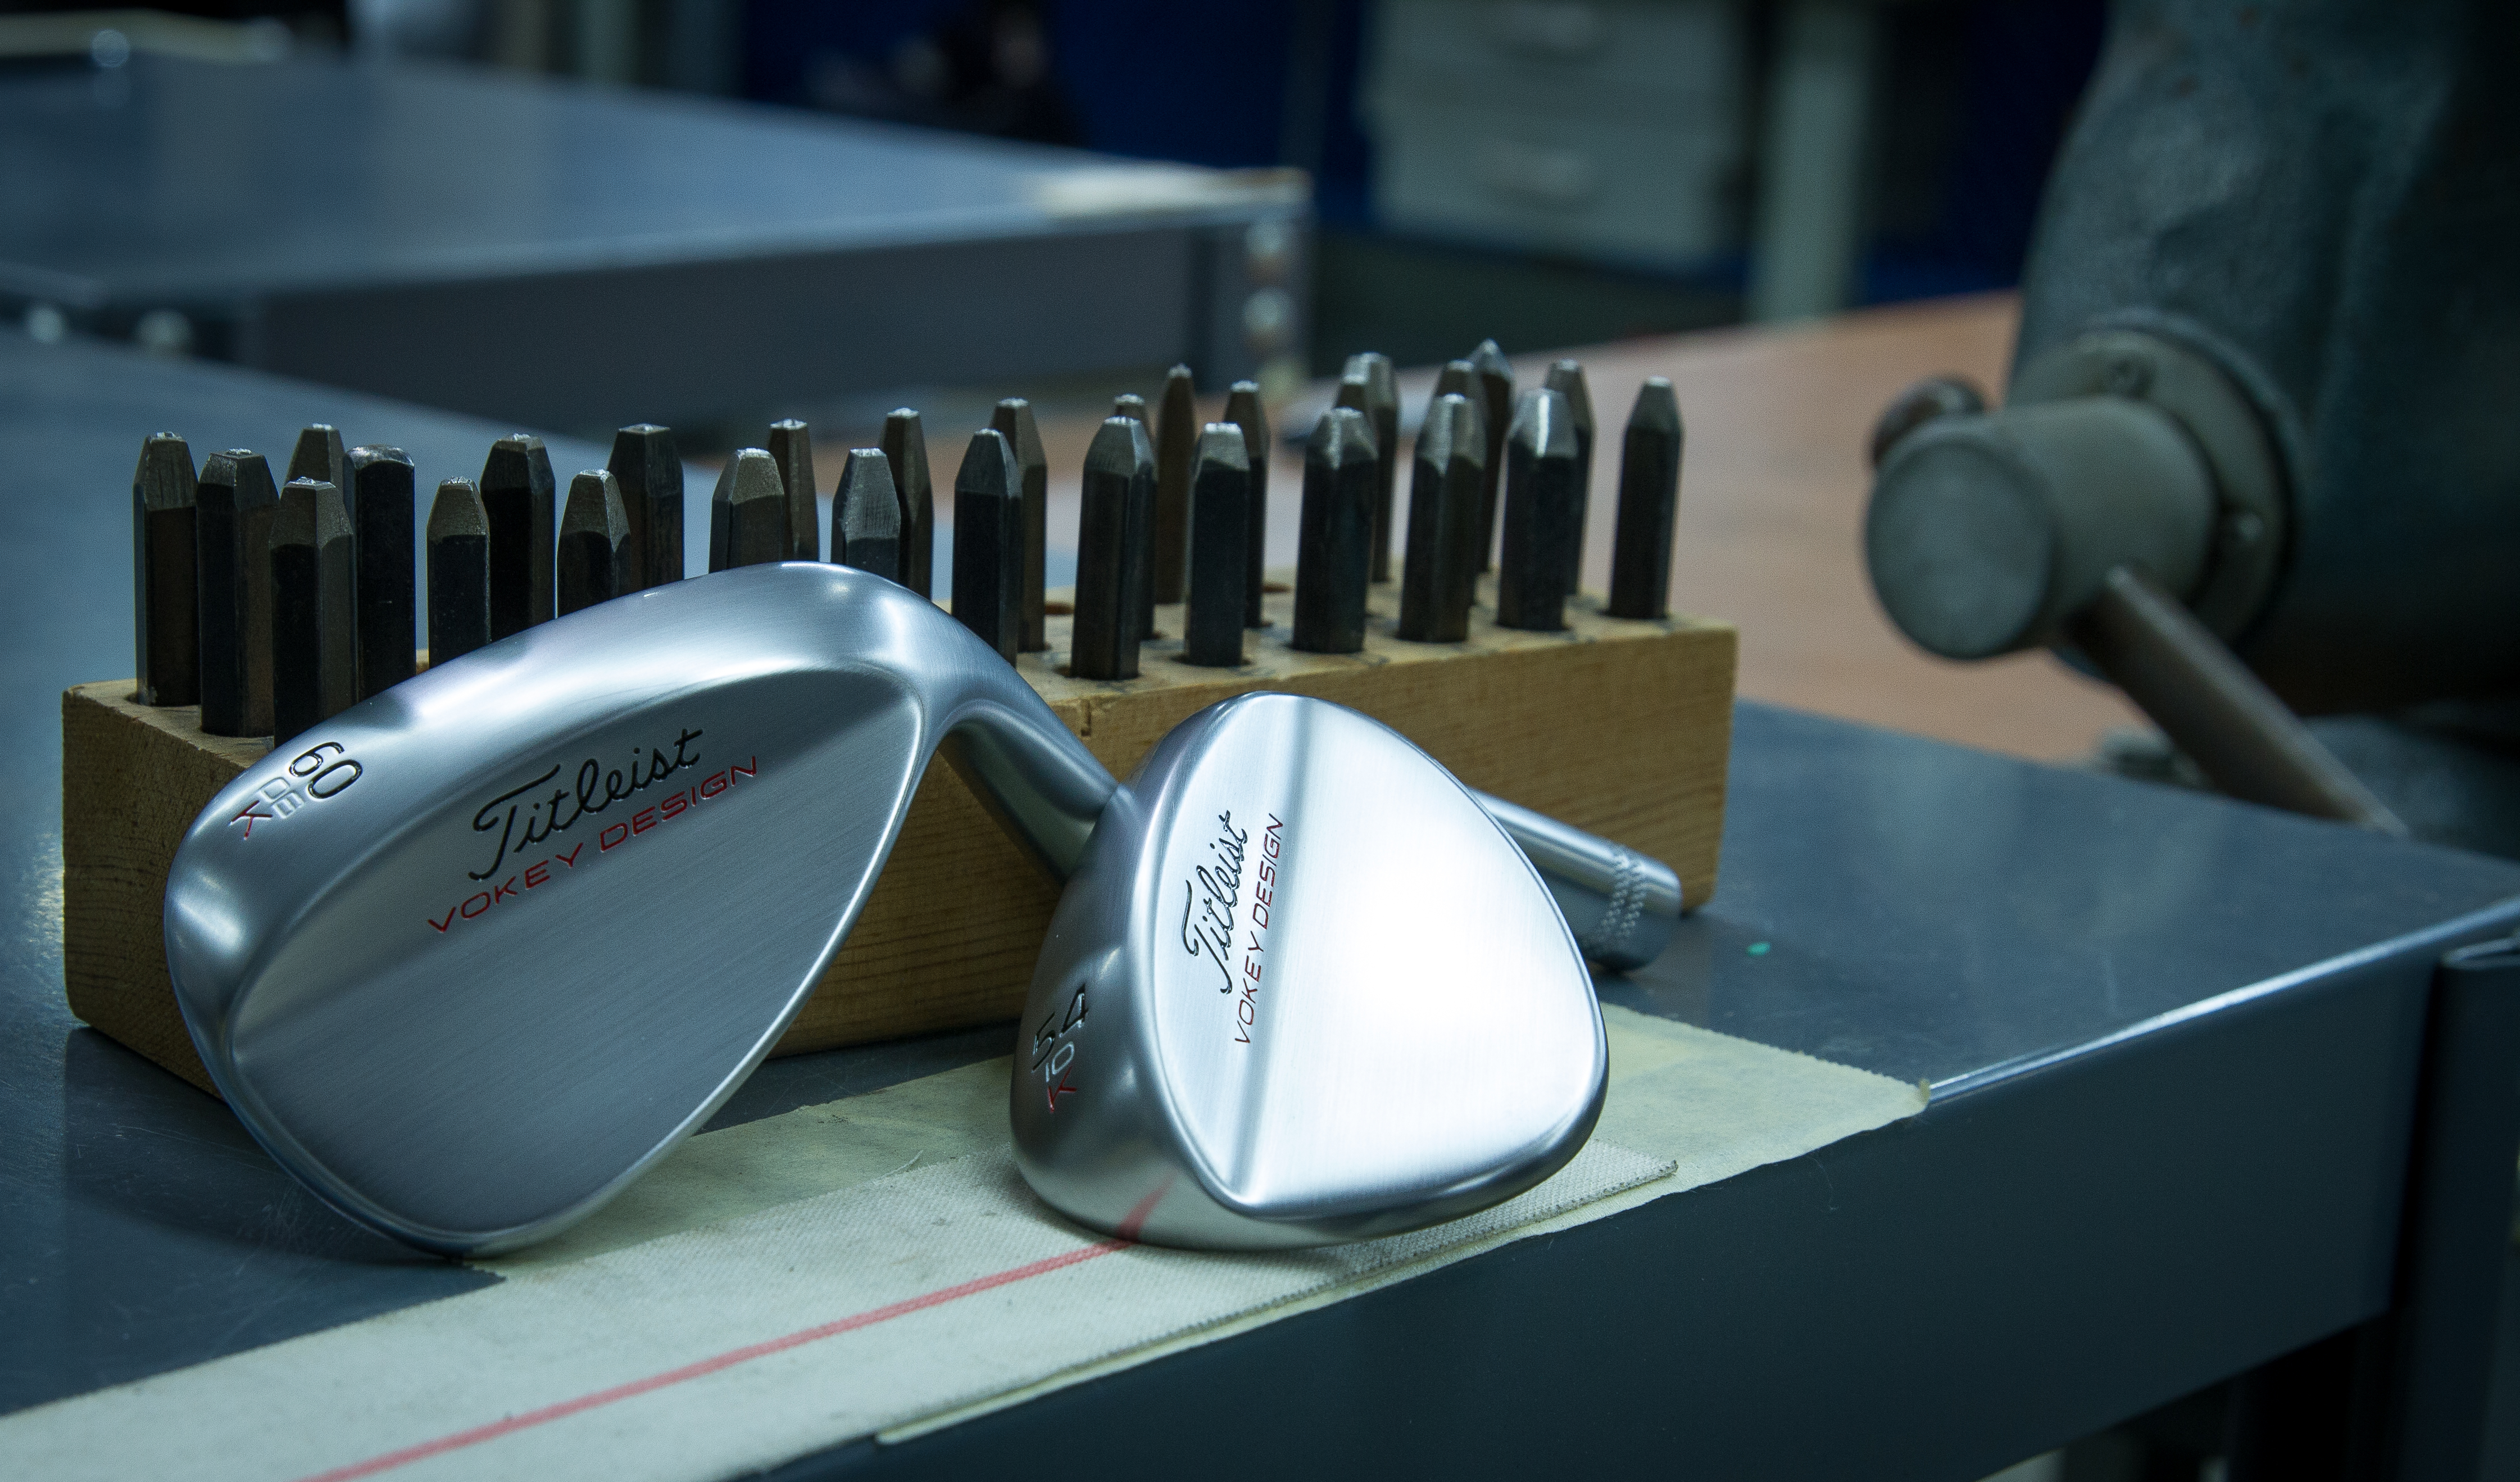 New Vokey K Grind wedge now available through custom wedgeworks